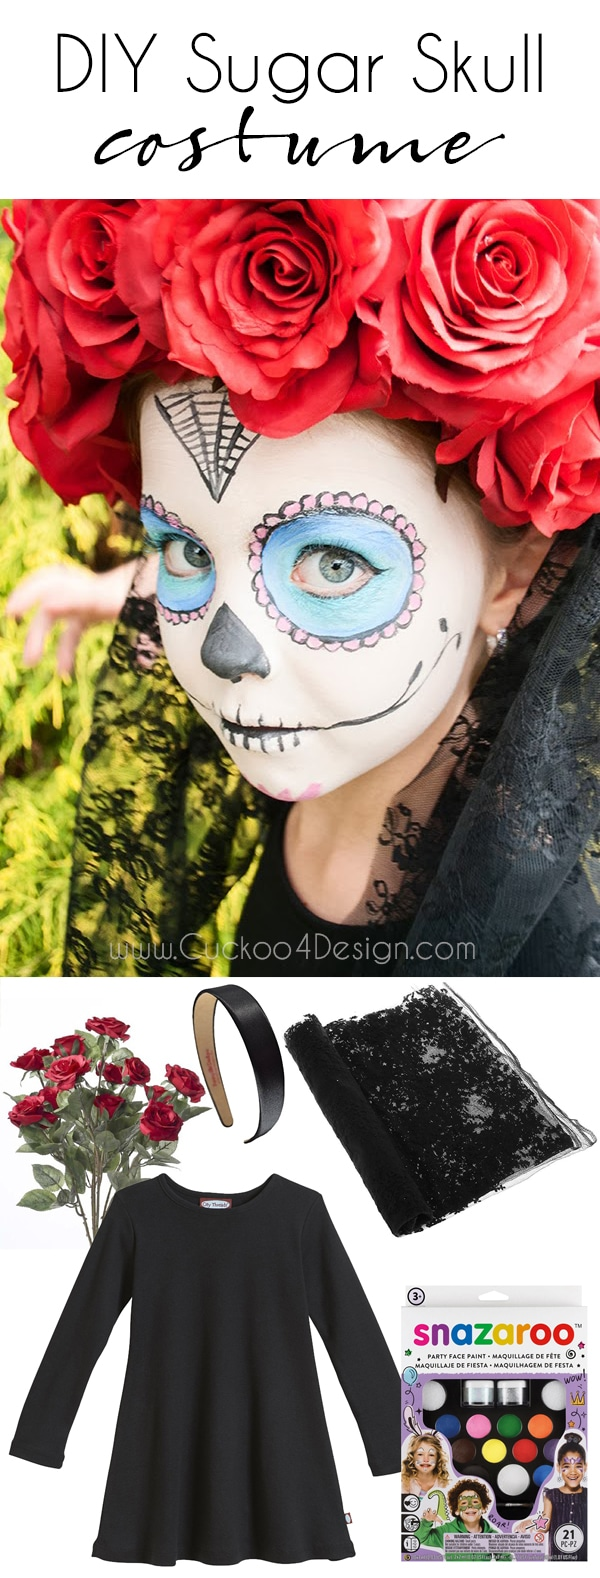 sugar skull costume what to wear